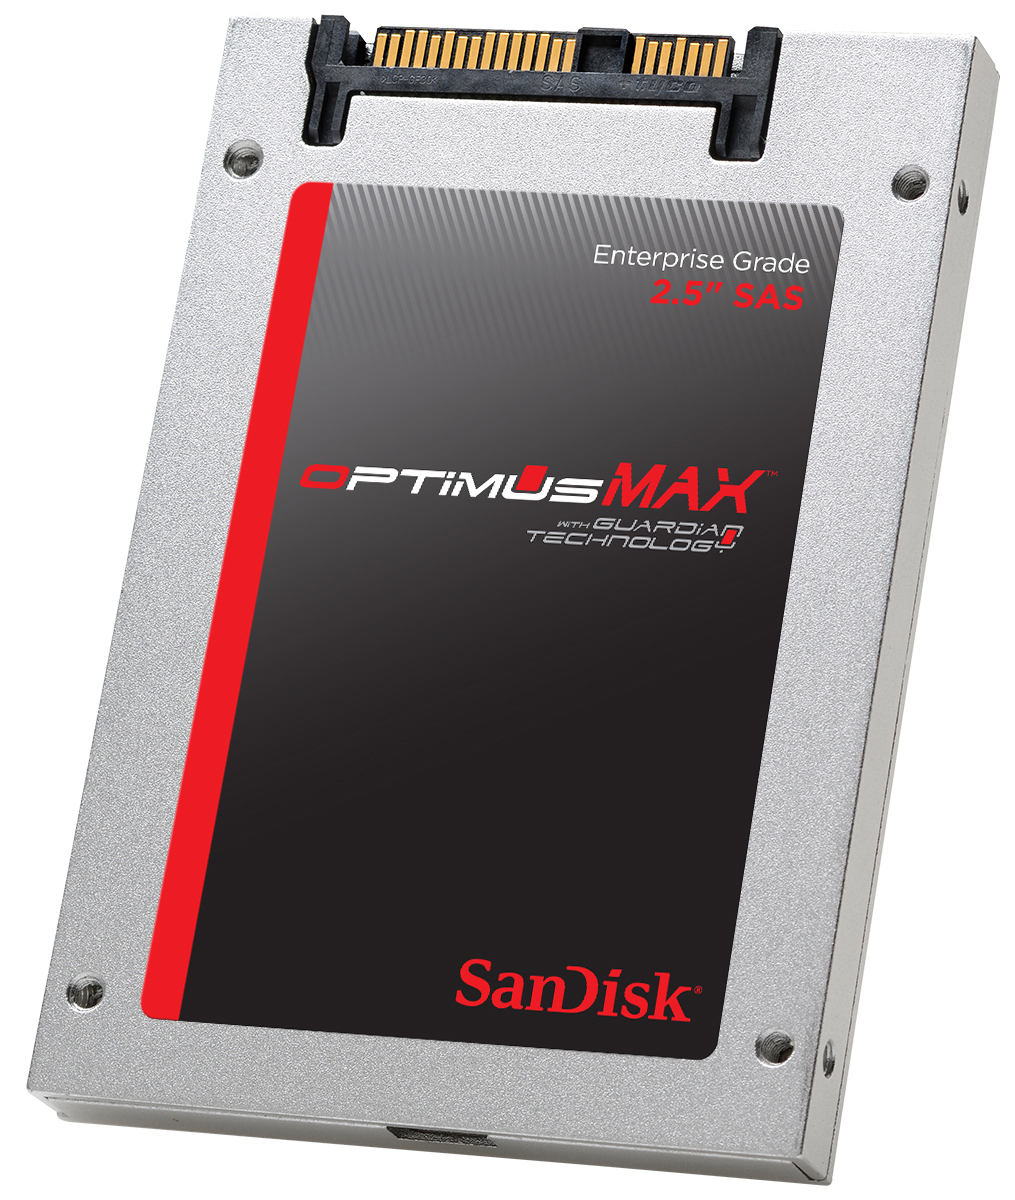 "SanDisk SDLLOCDR-038T-5CA1 SanDisk Optimus MAX 4 TB 2.5"" Internal Solid State Drive SAS 400 MB s Maximum... by SanDisk"